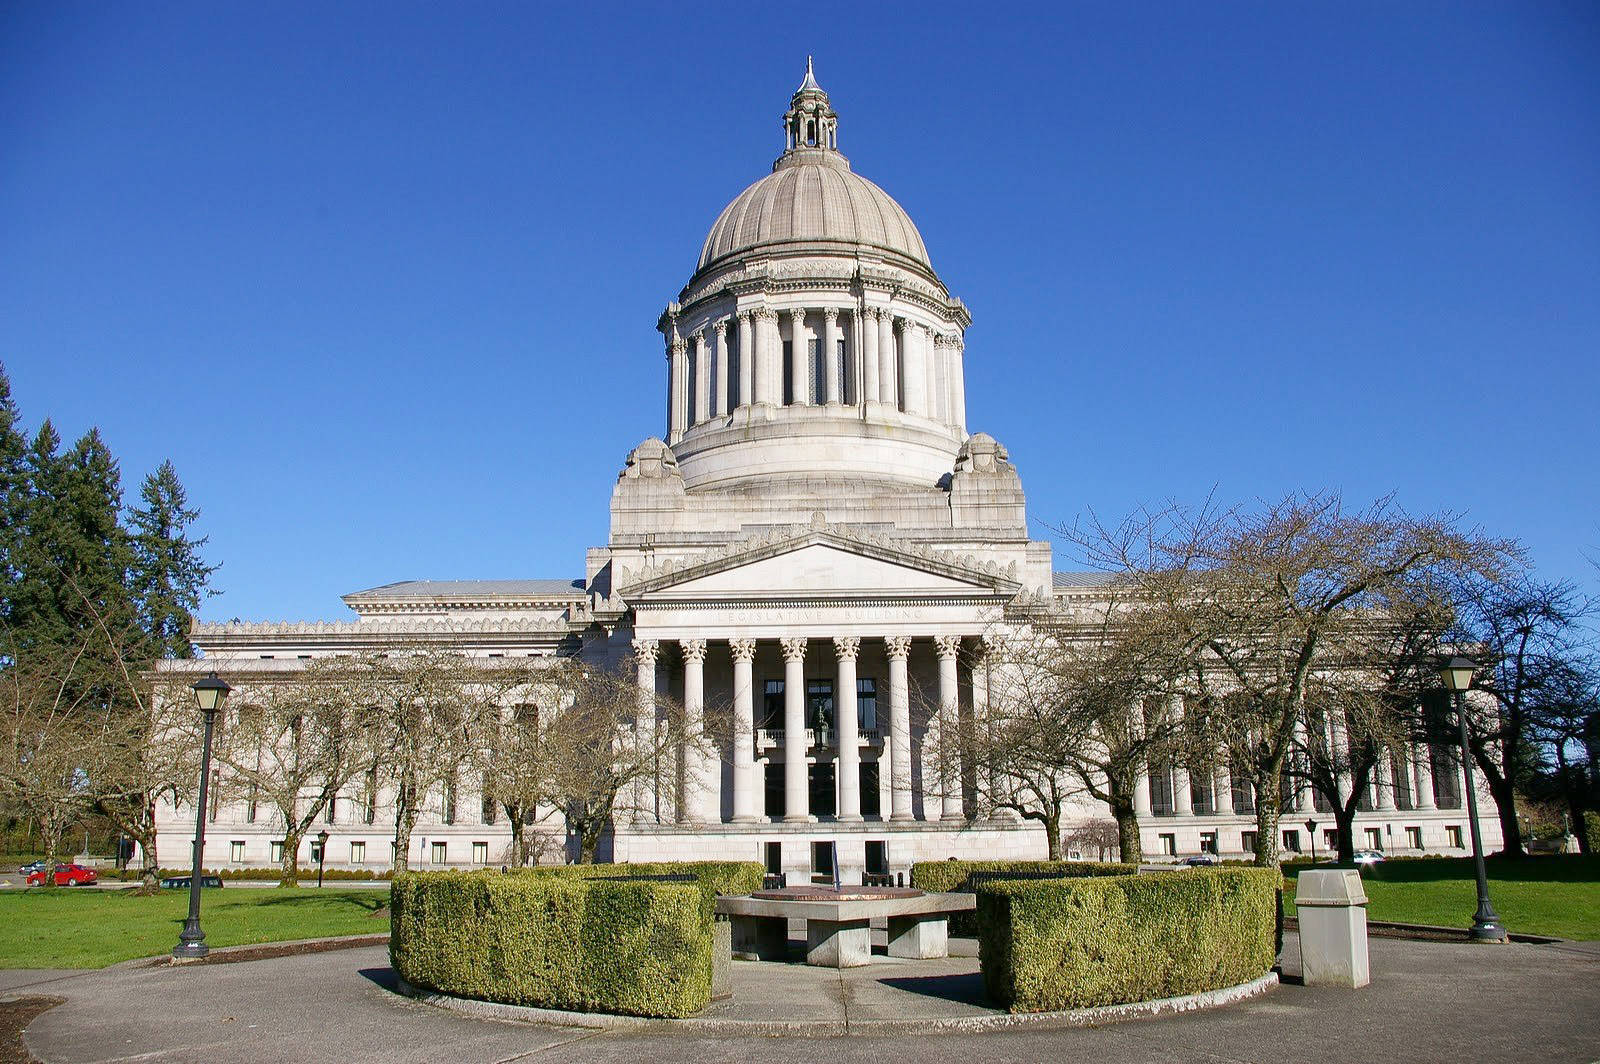 Washington State Capitol Building in Olympia. 	File photo